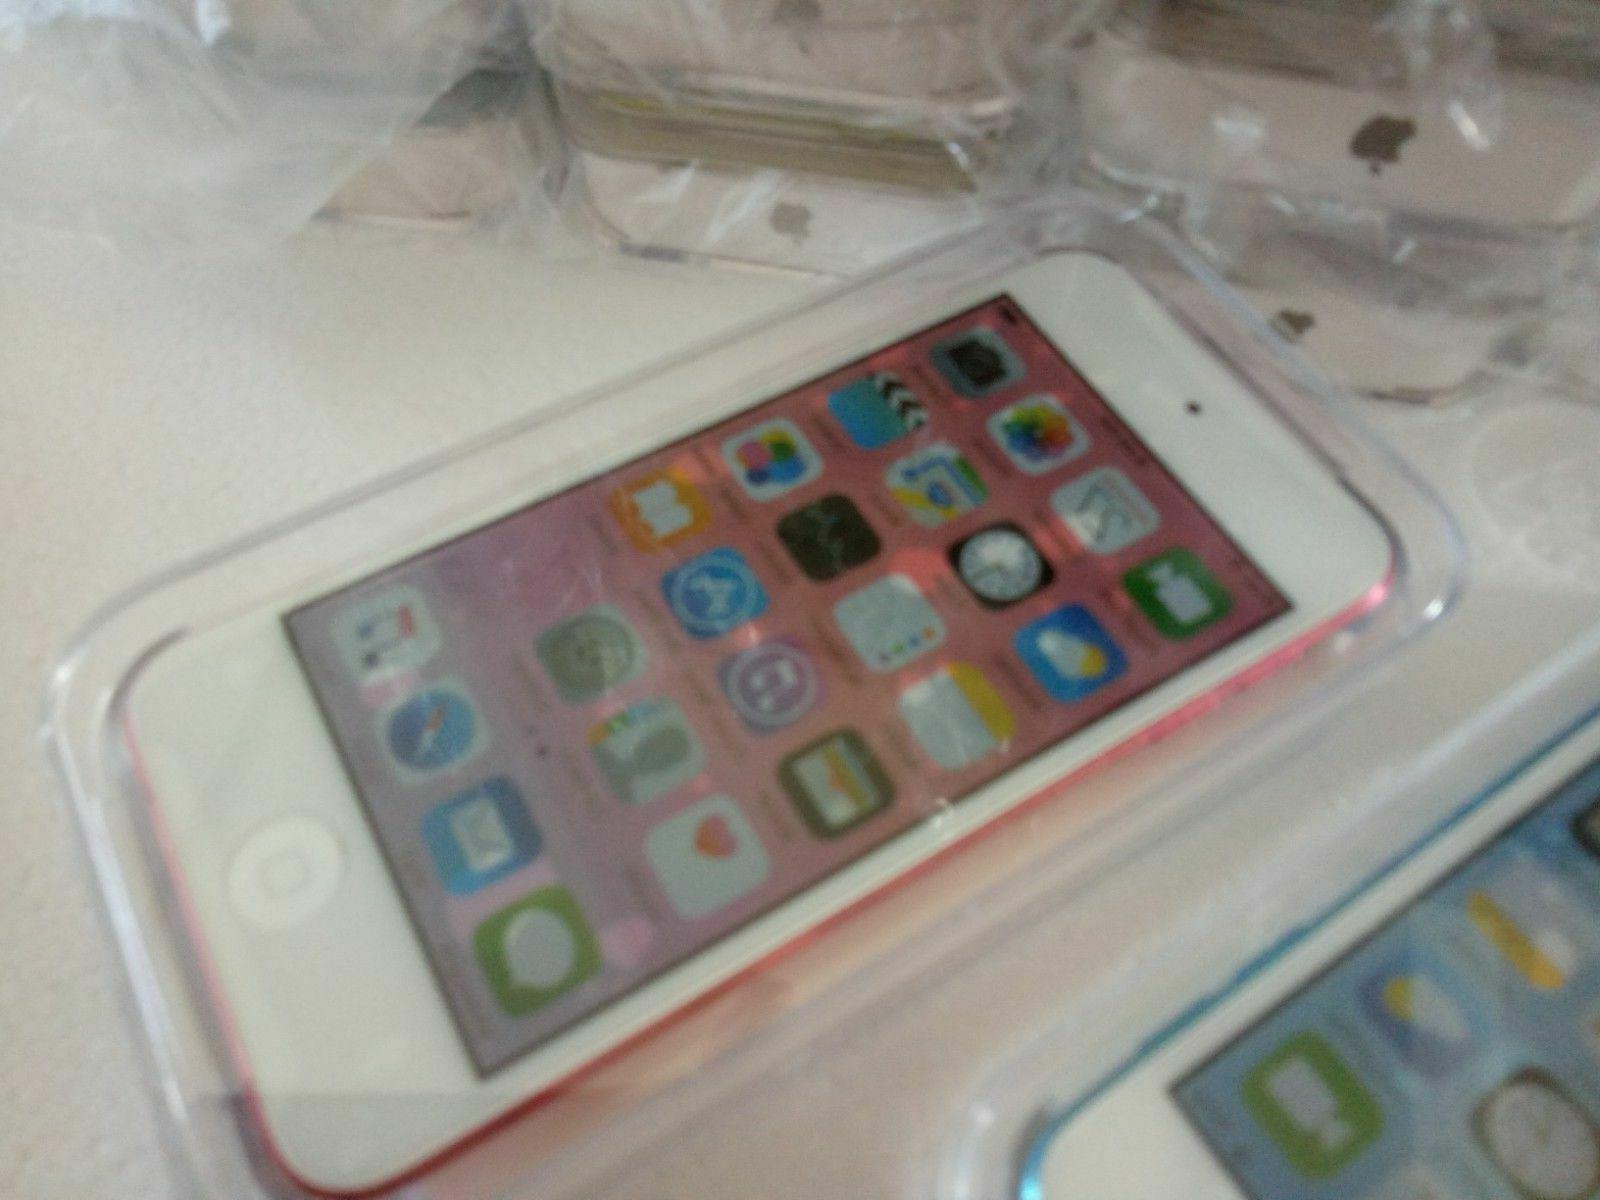 USA Apple iPod touch 5th Generation MP4